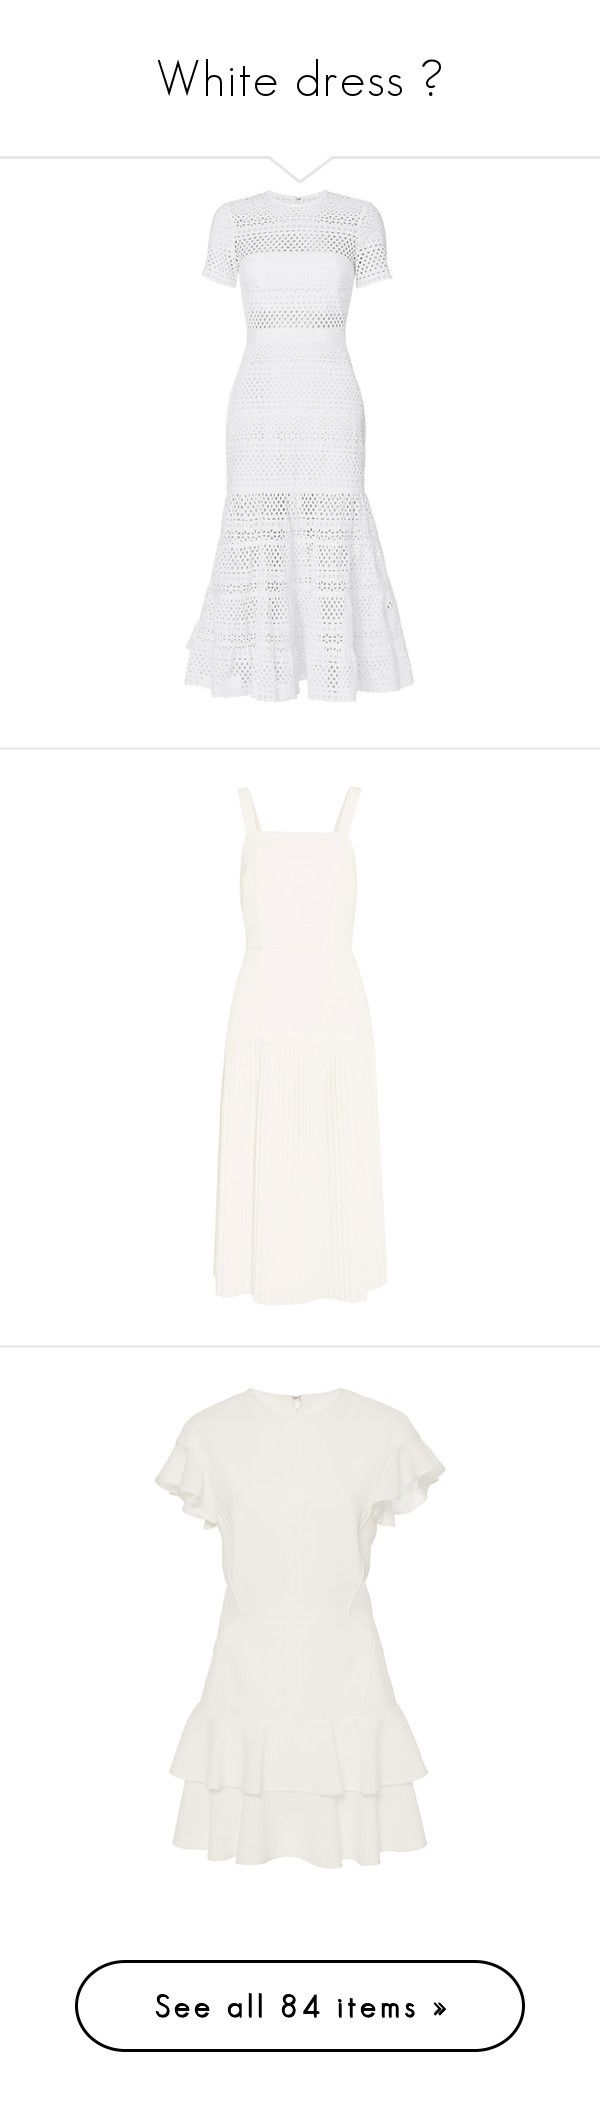 """""""White dress 💭"""" by ngkhhuynstyle ❤ liked on Polyvore featuring dresses, vestidos, white, short mini skirts, short skirts, white short sleeve dress, white mini skirt, see-through dresses, pleated midi dress and polka dot midi dress"""